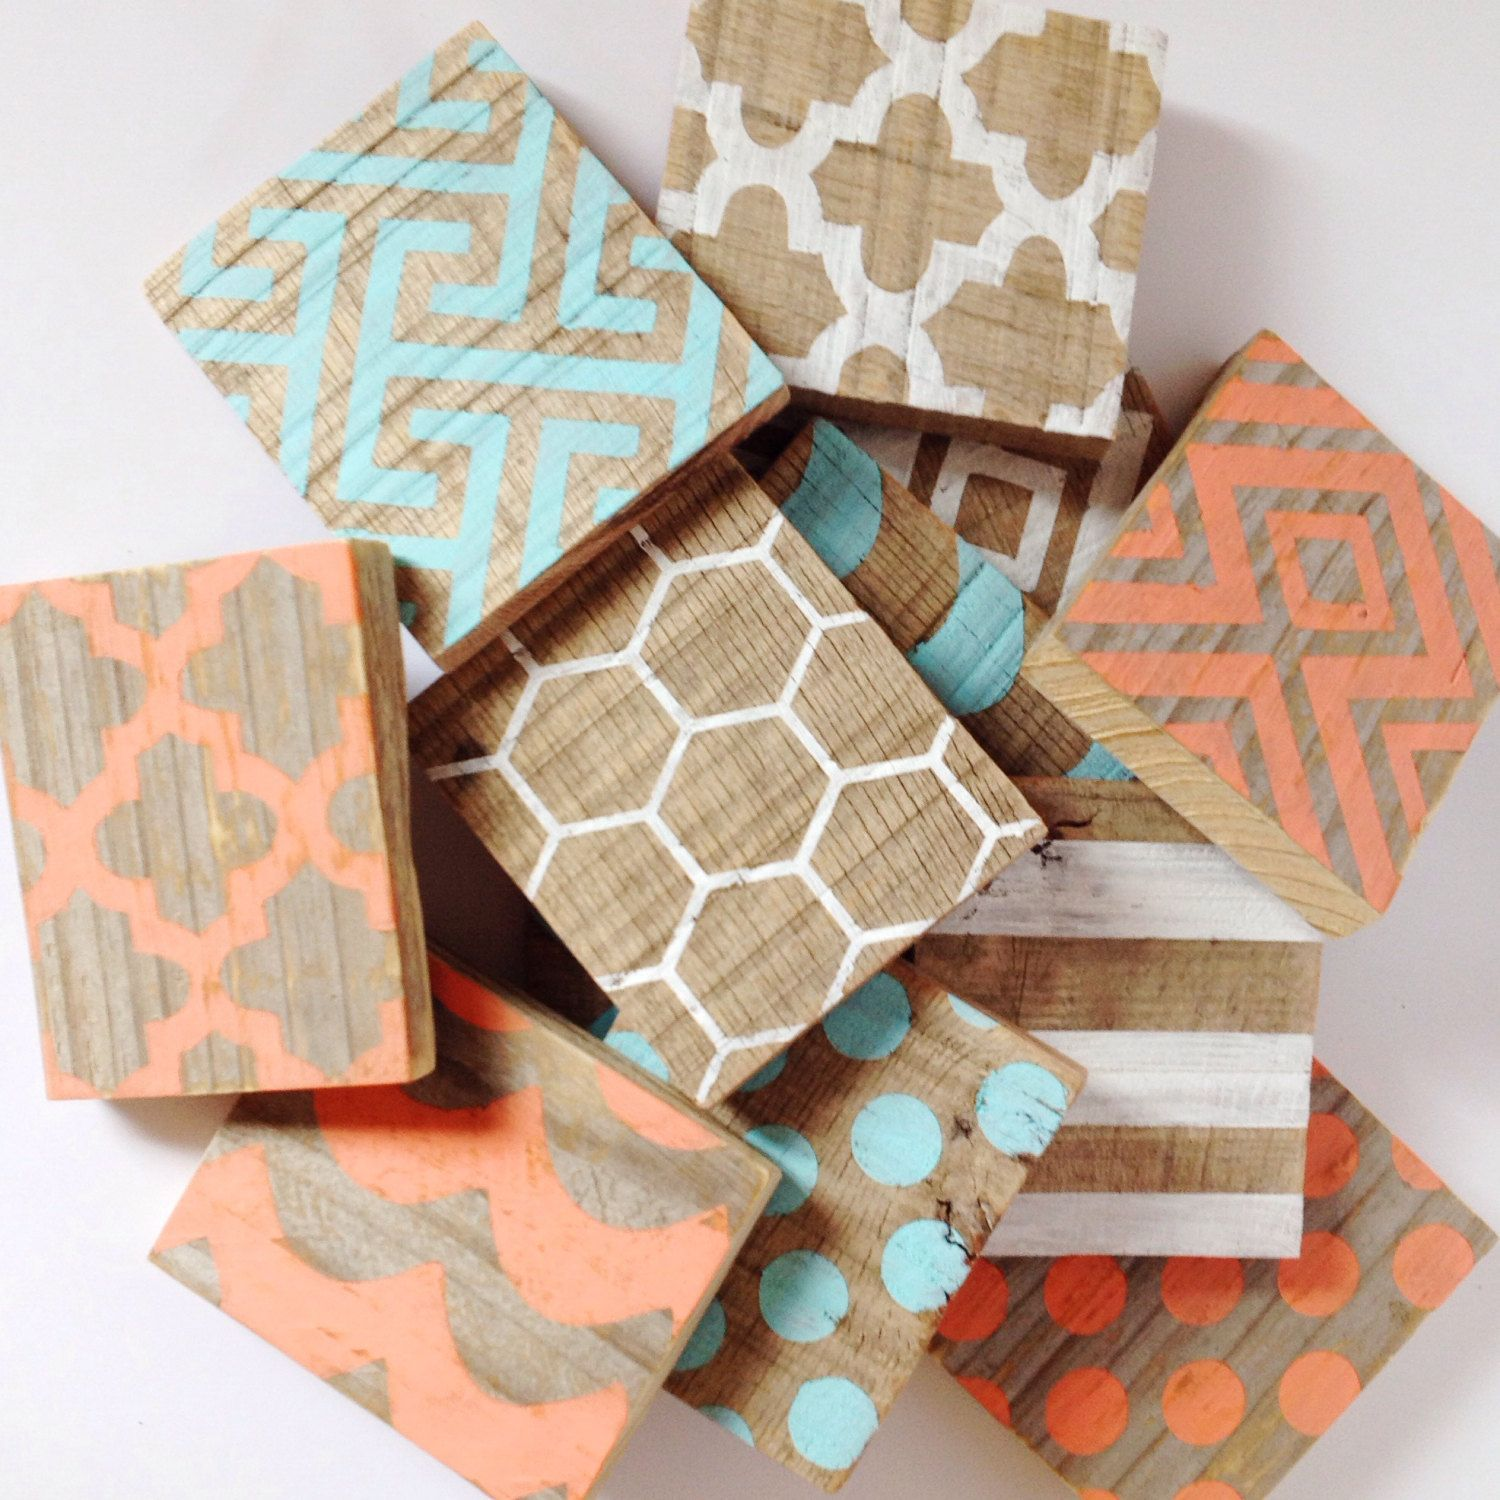 Modern Patterned Hand Painted Wood Coasters By Theelizabethsshop 15 00 Wood Coasters Diy Wood Coasters Diy Coasters